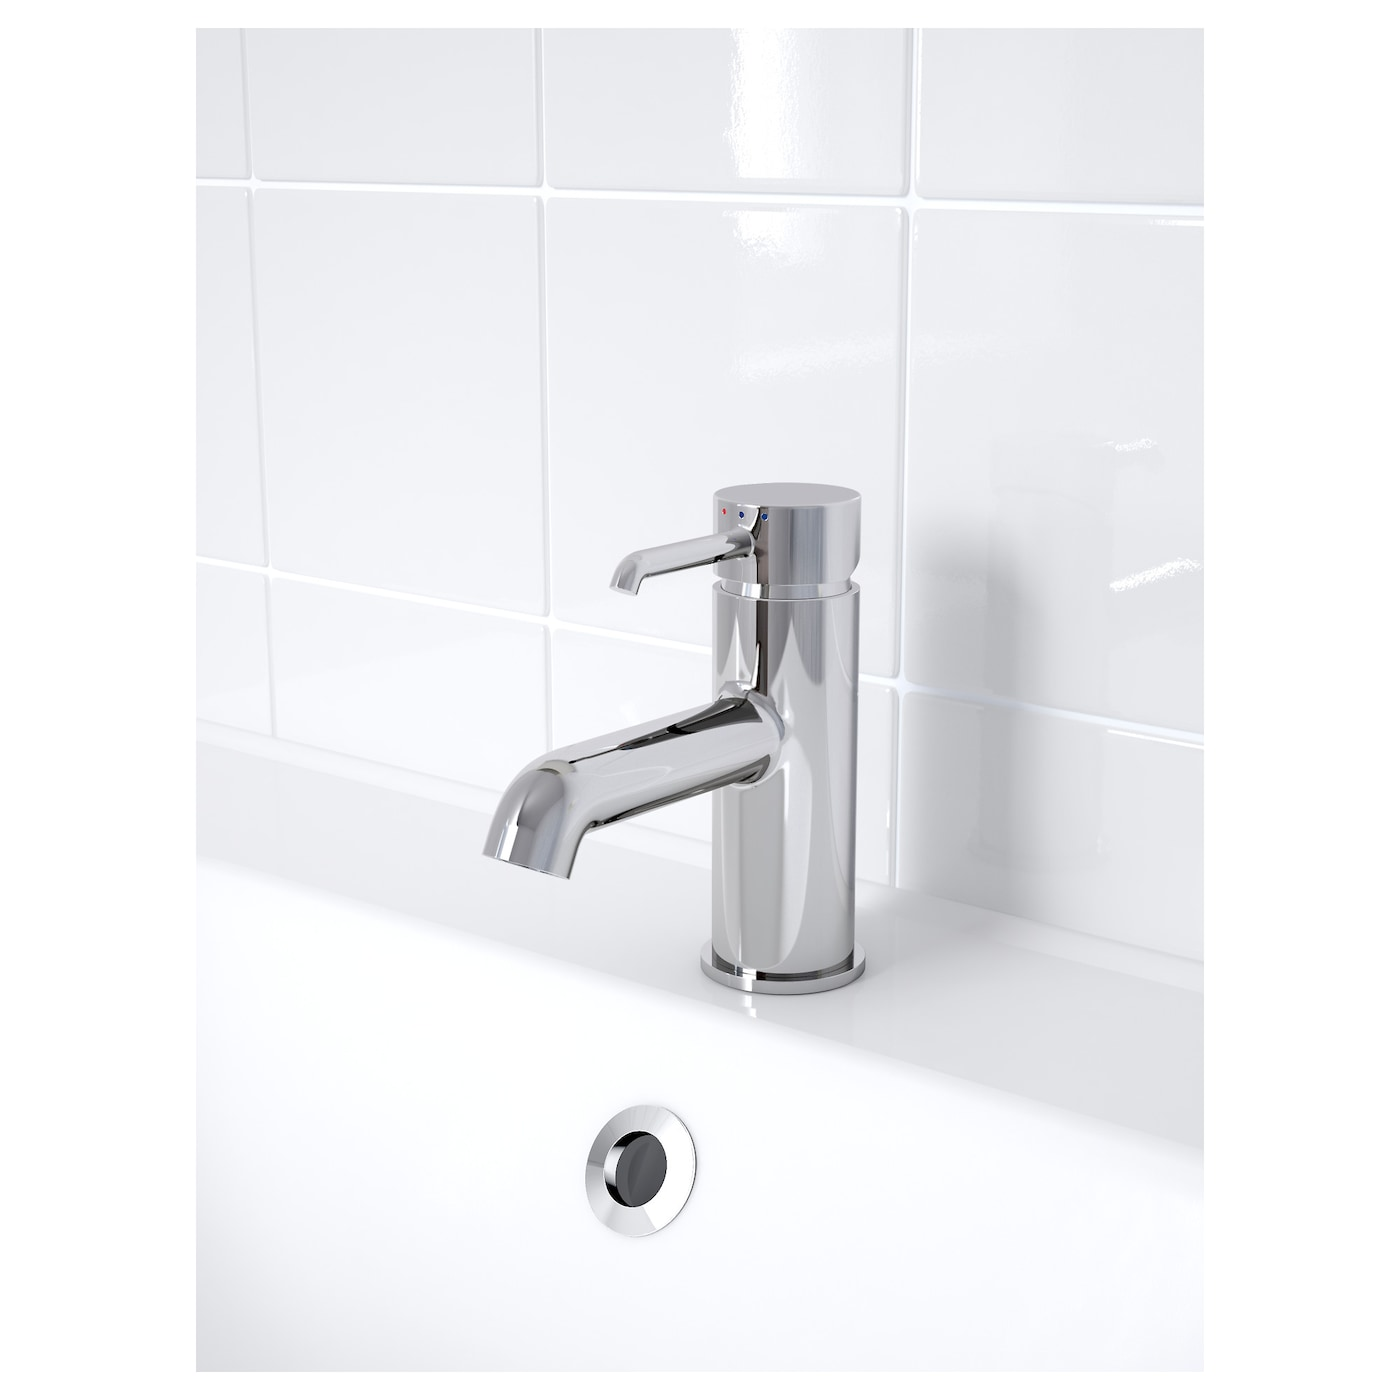 IKEA DANNSKÄR wash-basin mixer tap with strainer